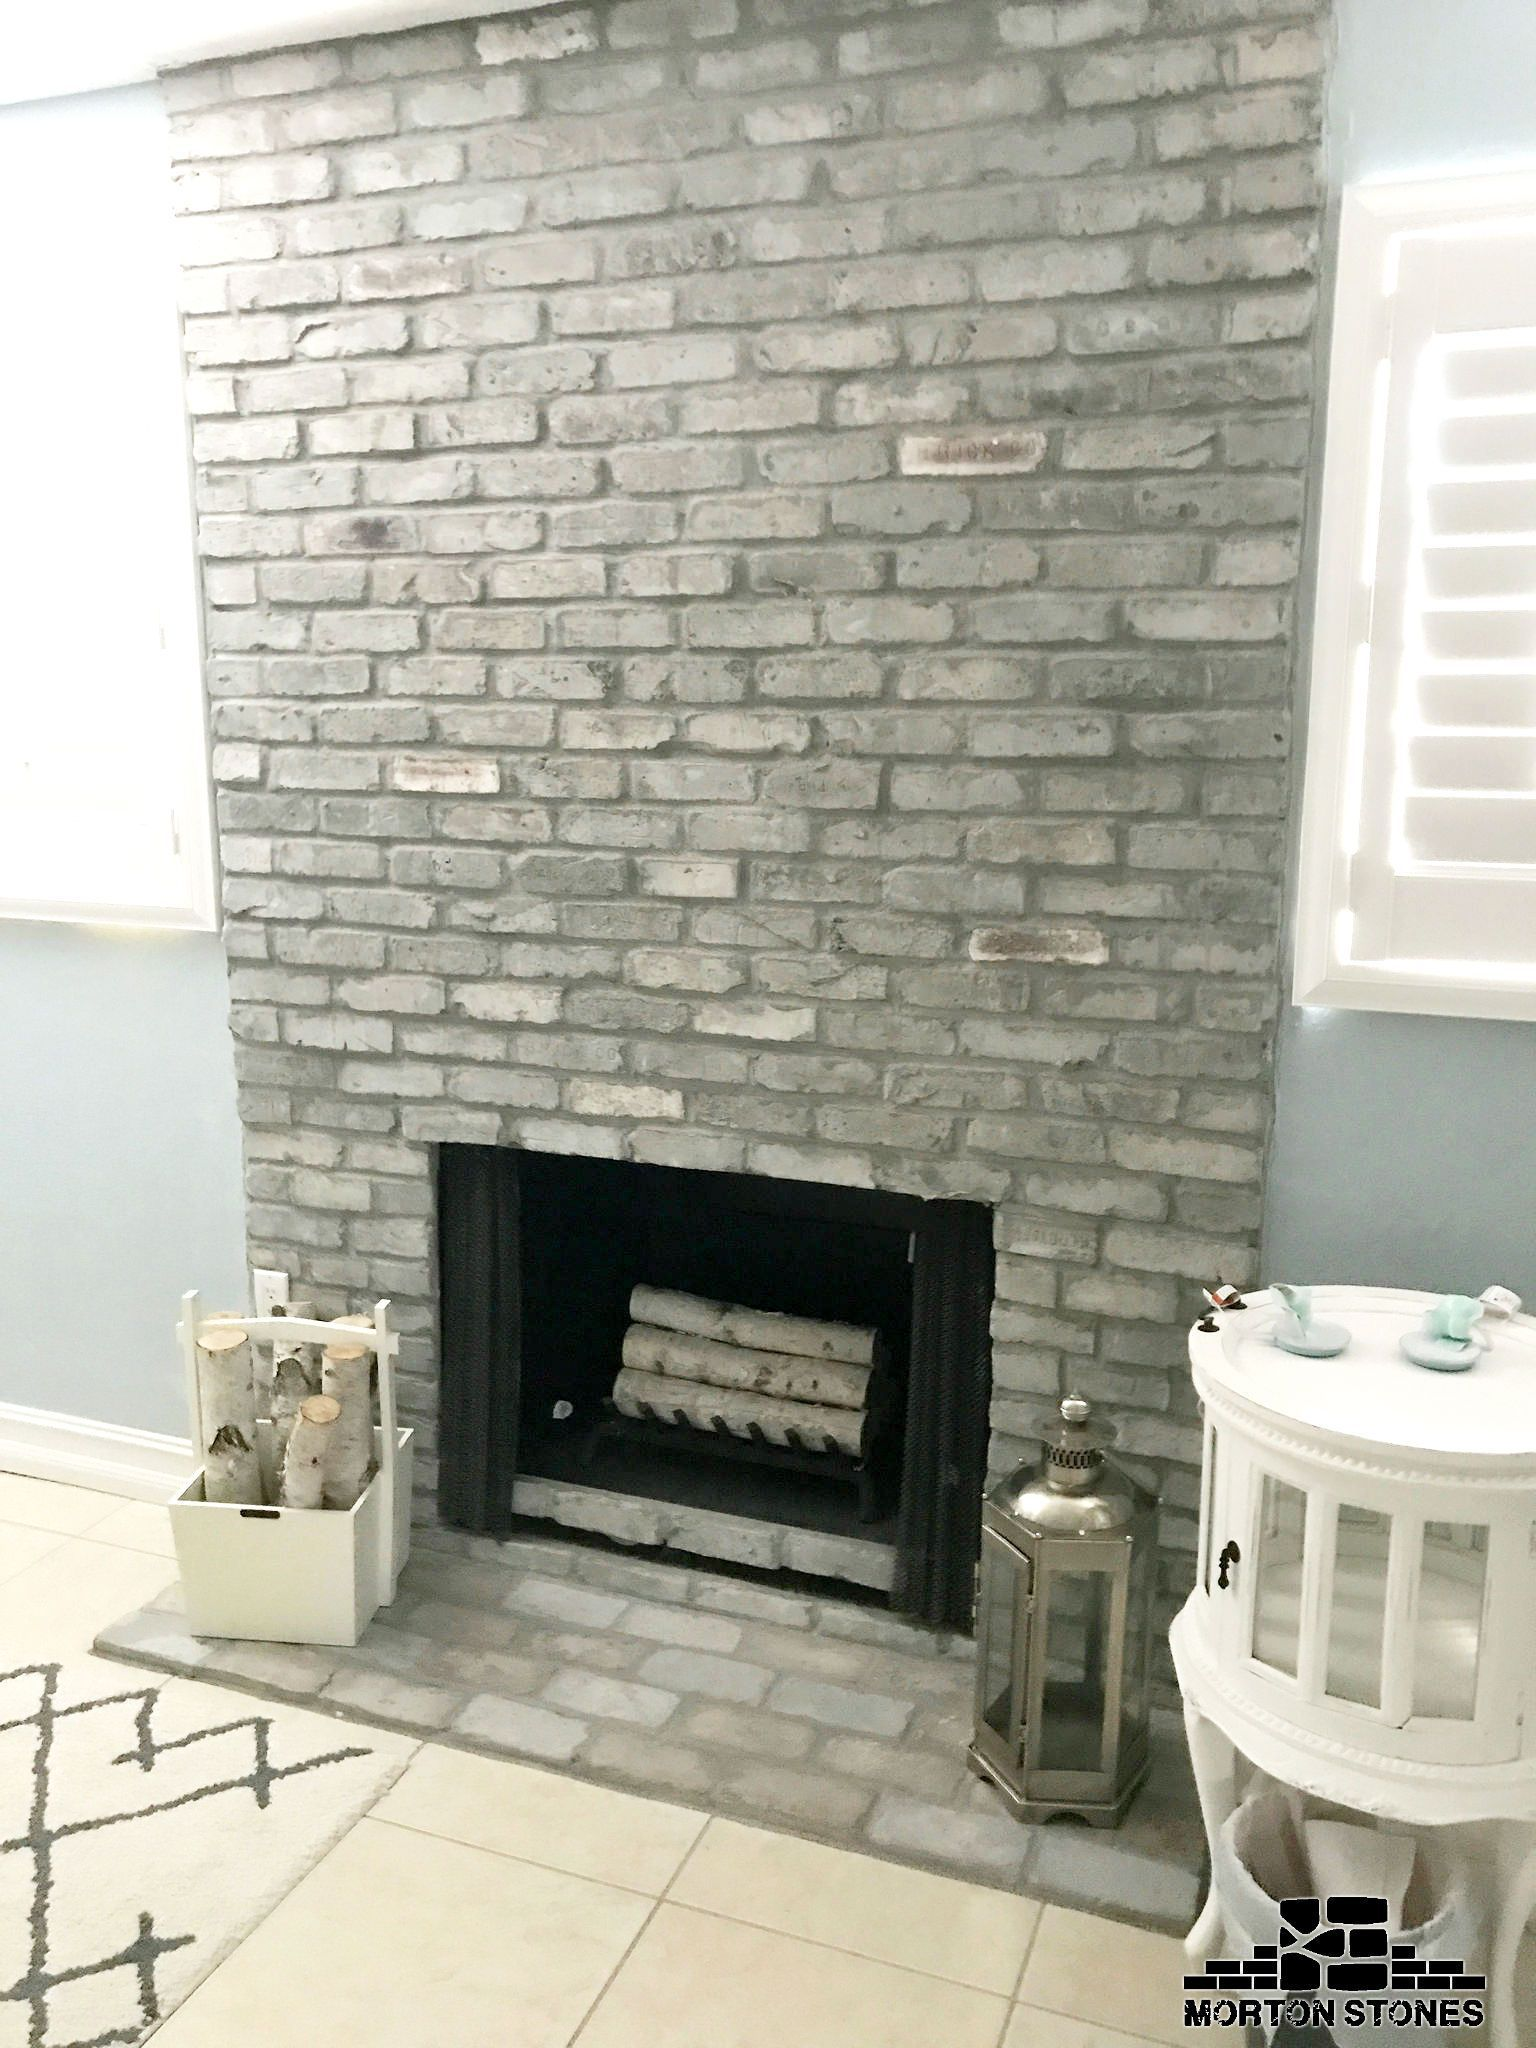 The Gray Brick Fireplace Adds A Lovely French Country Charm To The Room Mortonstones Brick Tiles Rustic Basement Remodeling Small Basement Remodel Remodel